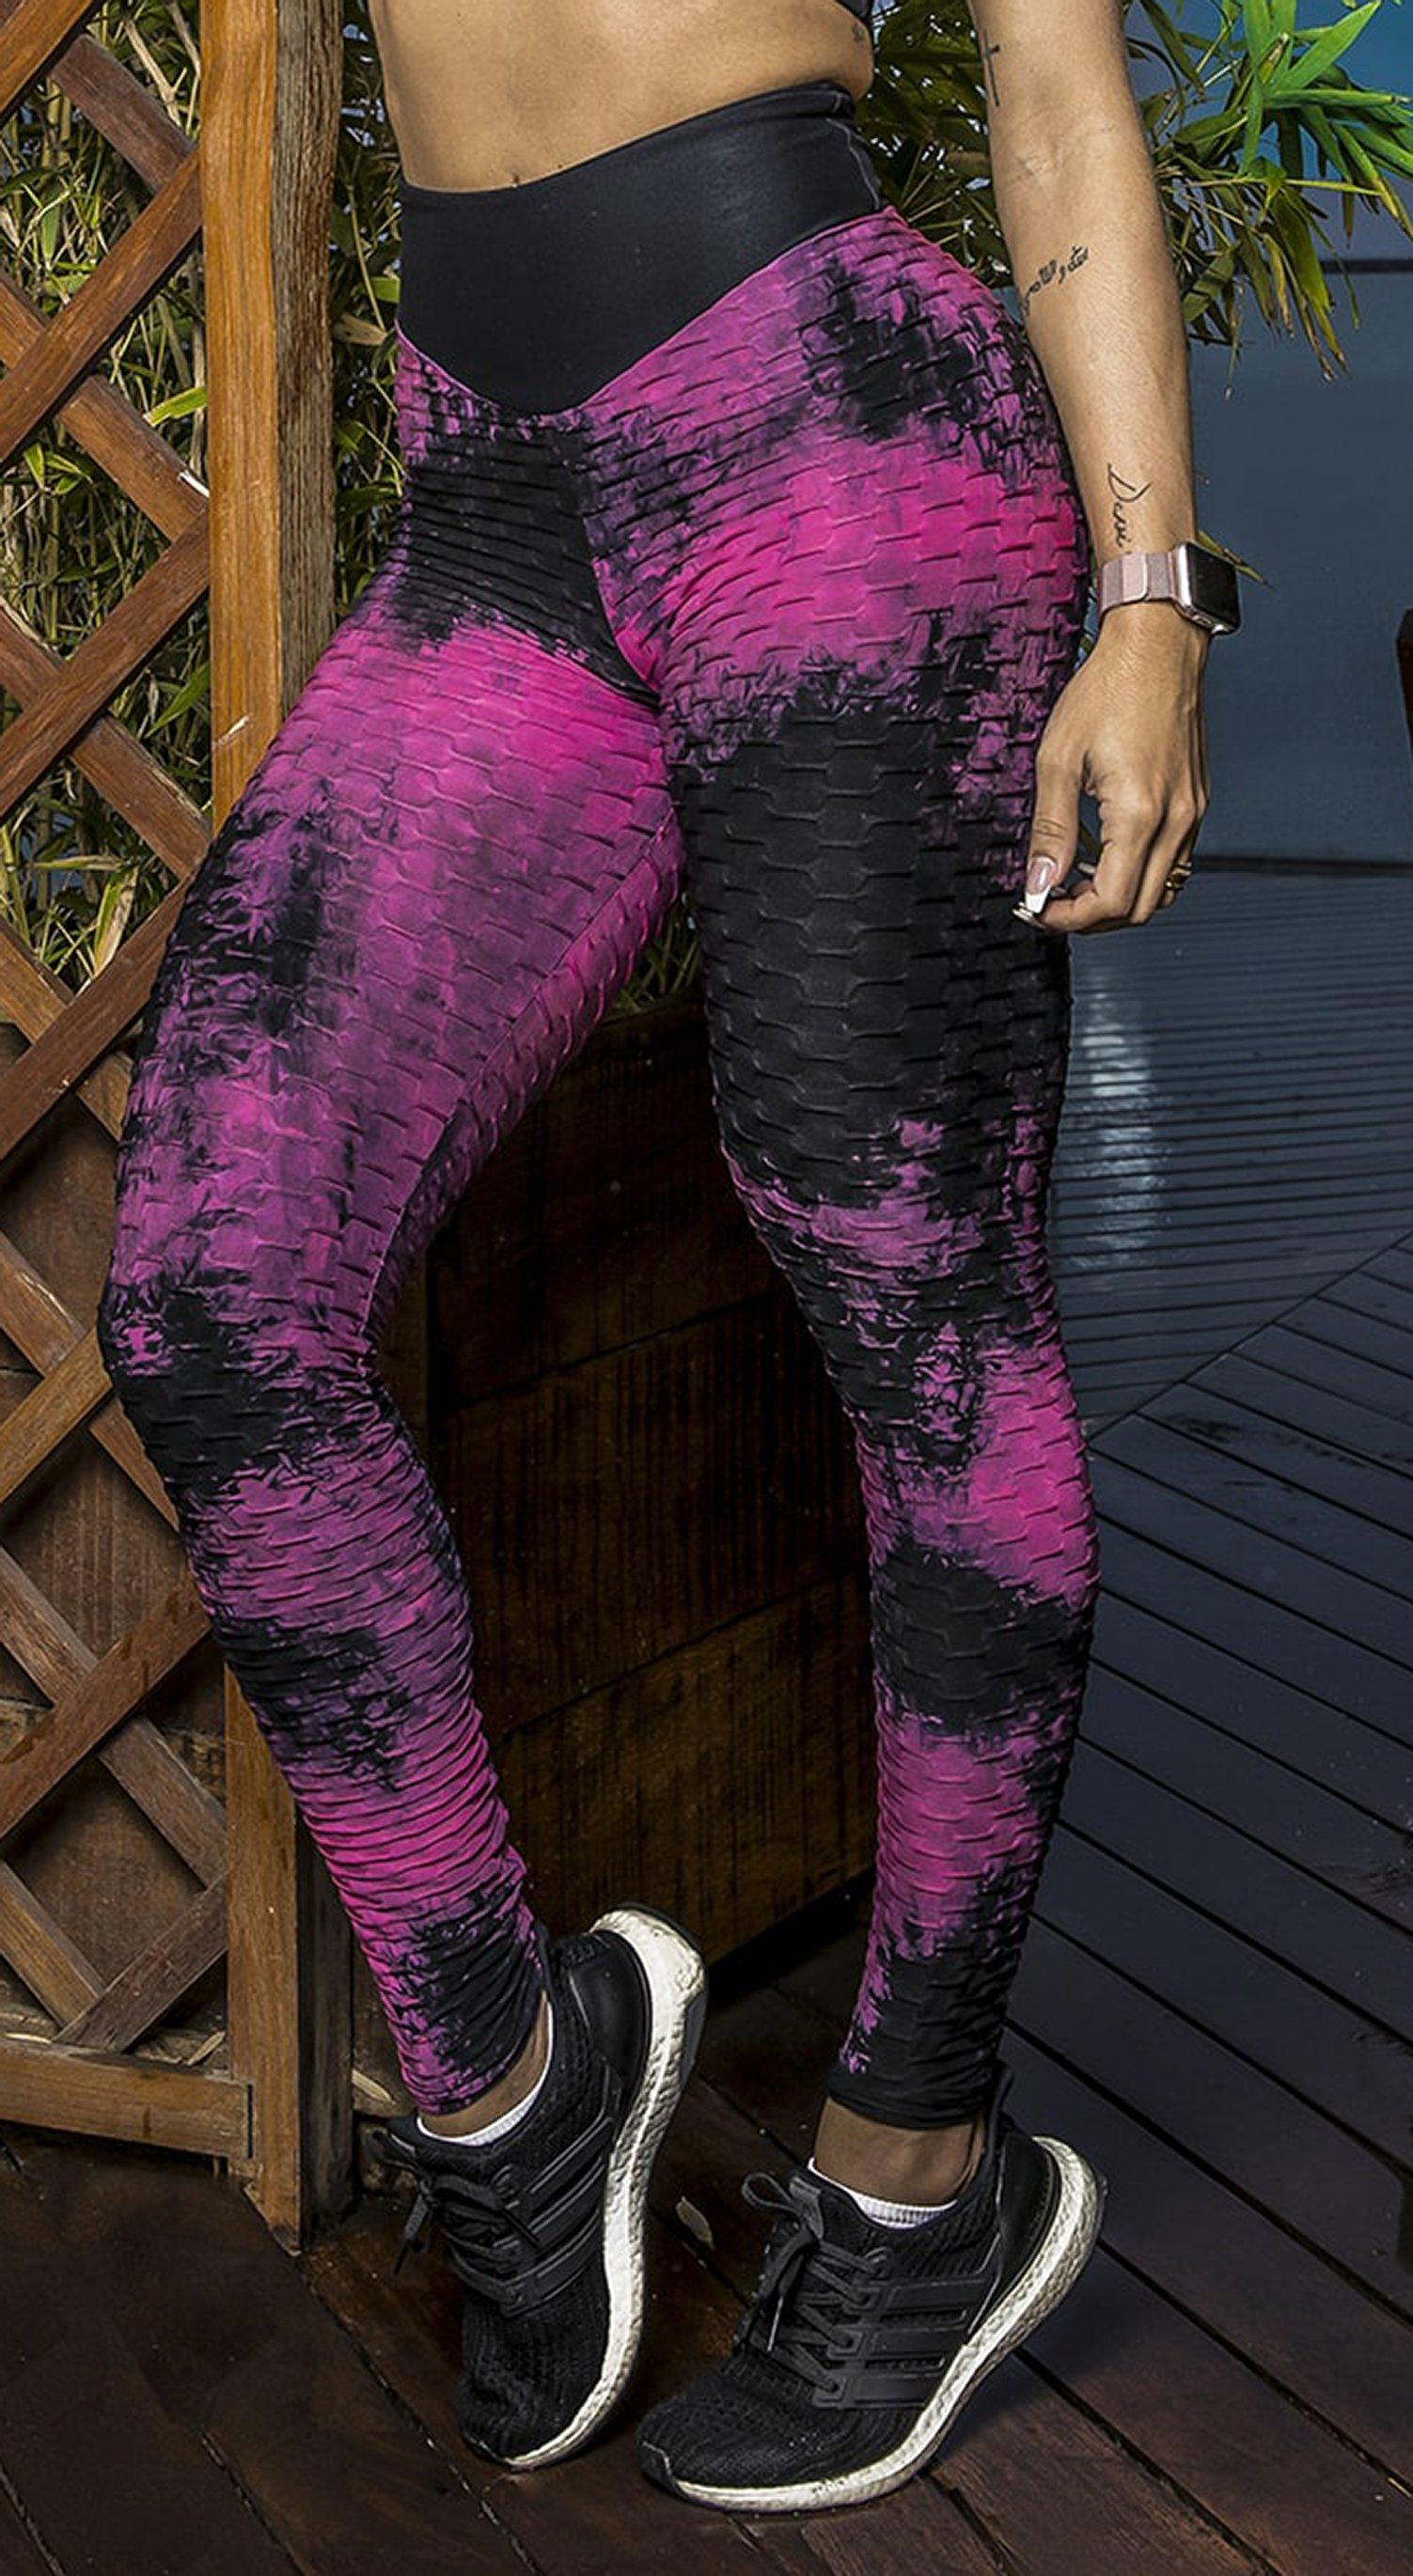 Brazilian Legging - High Waist Anti Cellulite Textured Scrunch Booty Tie Dye Pink & Black